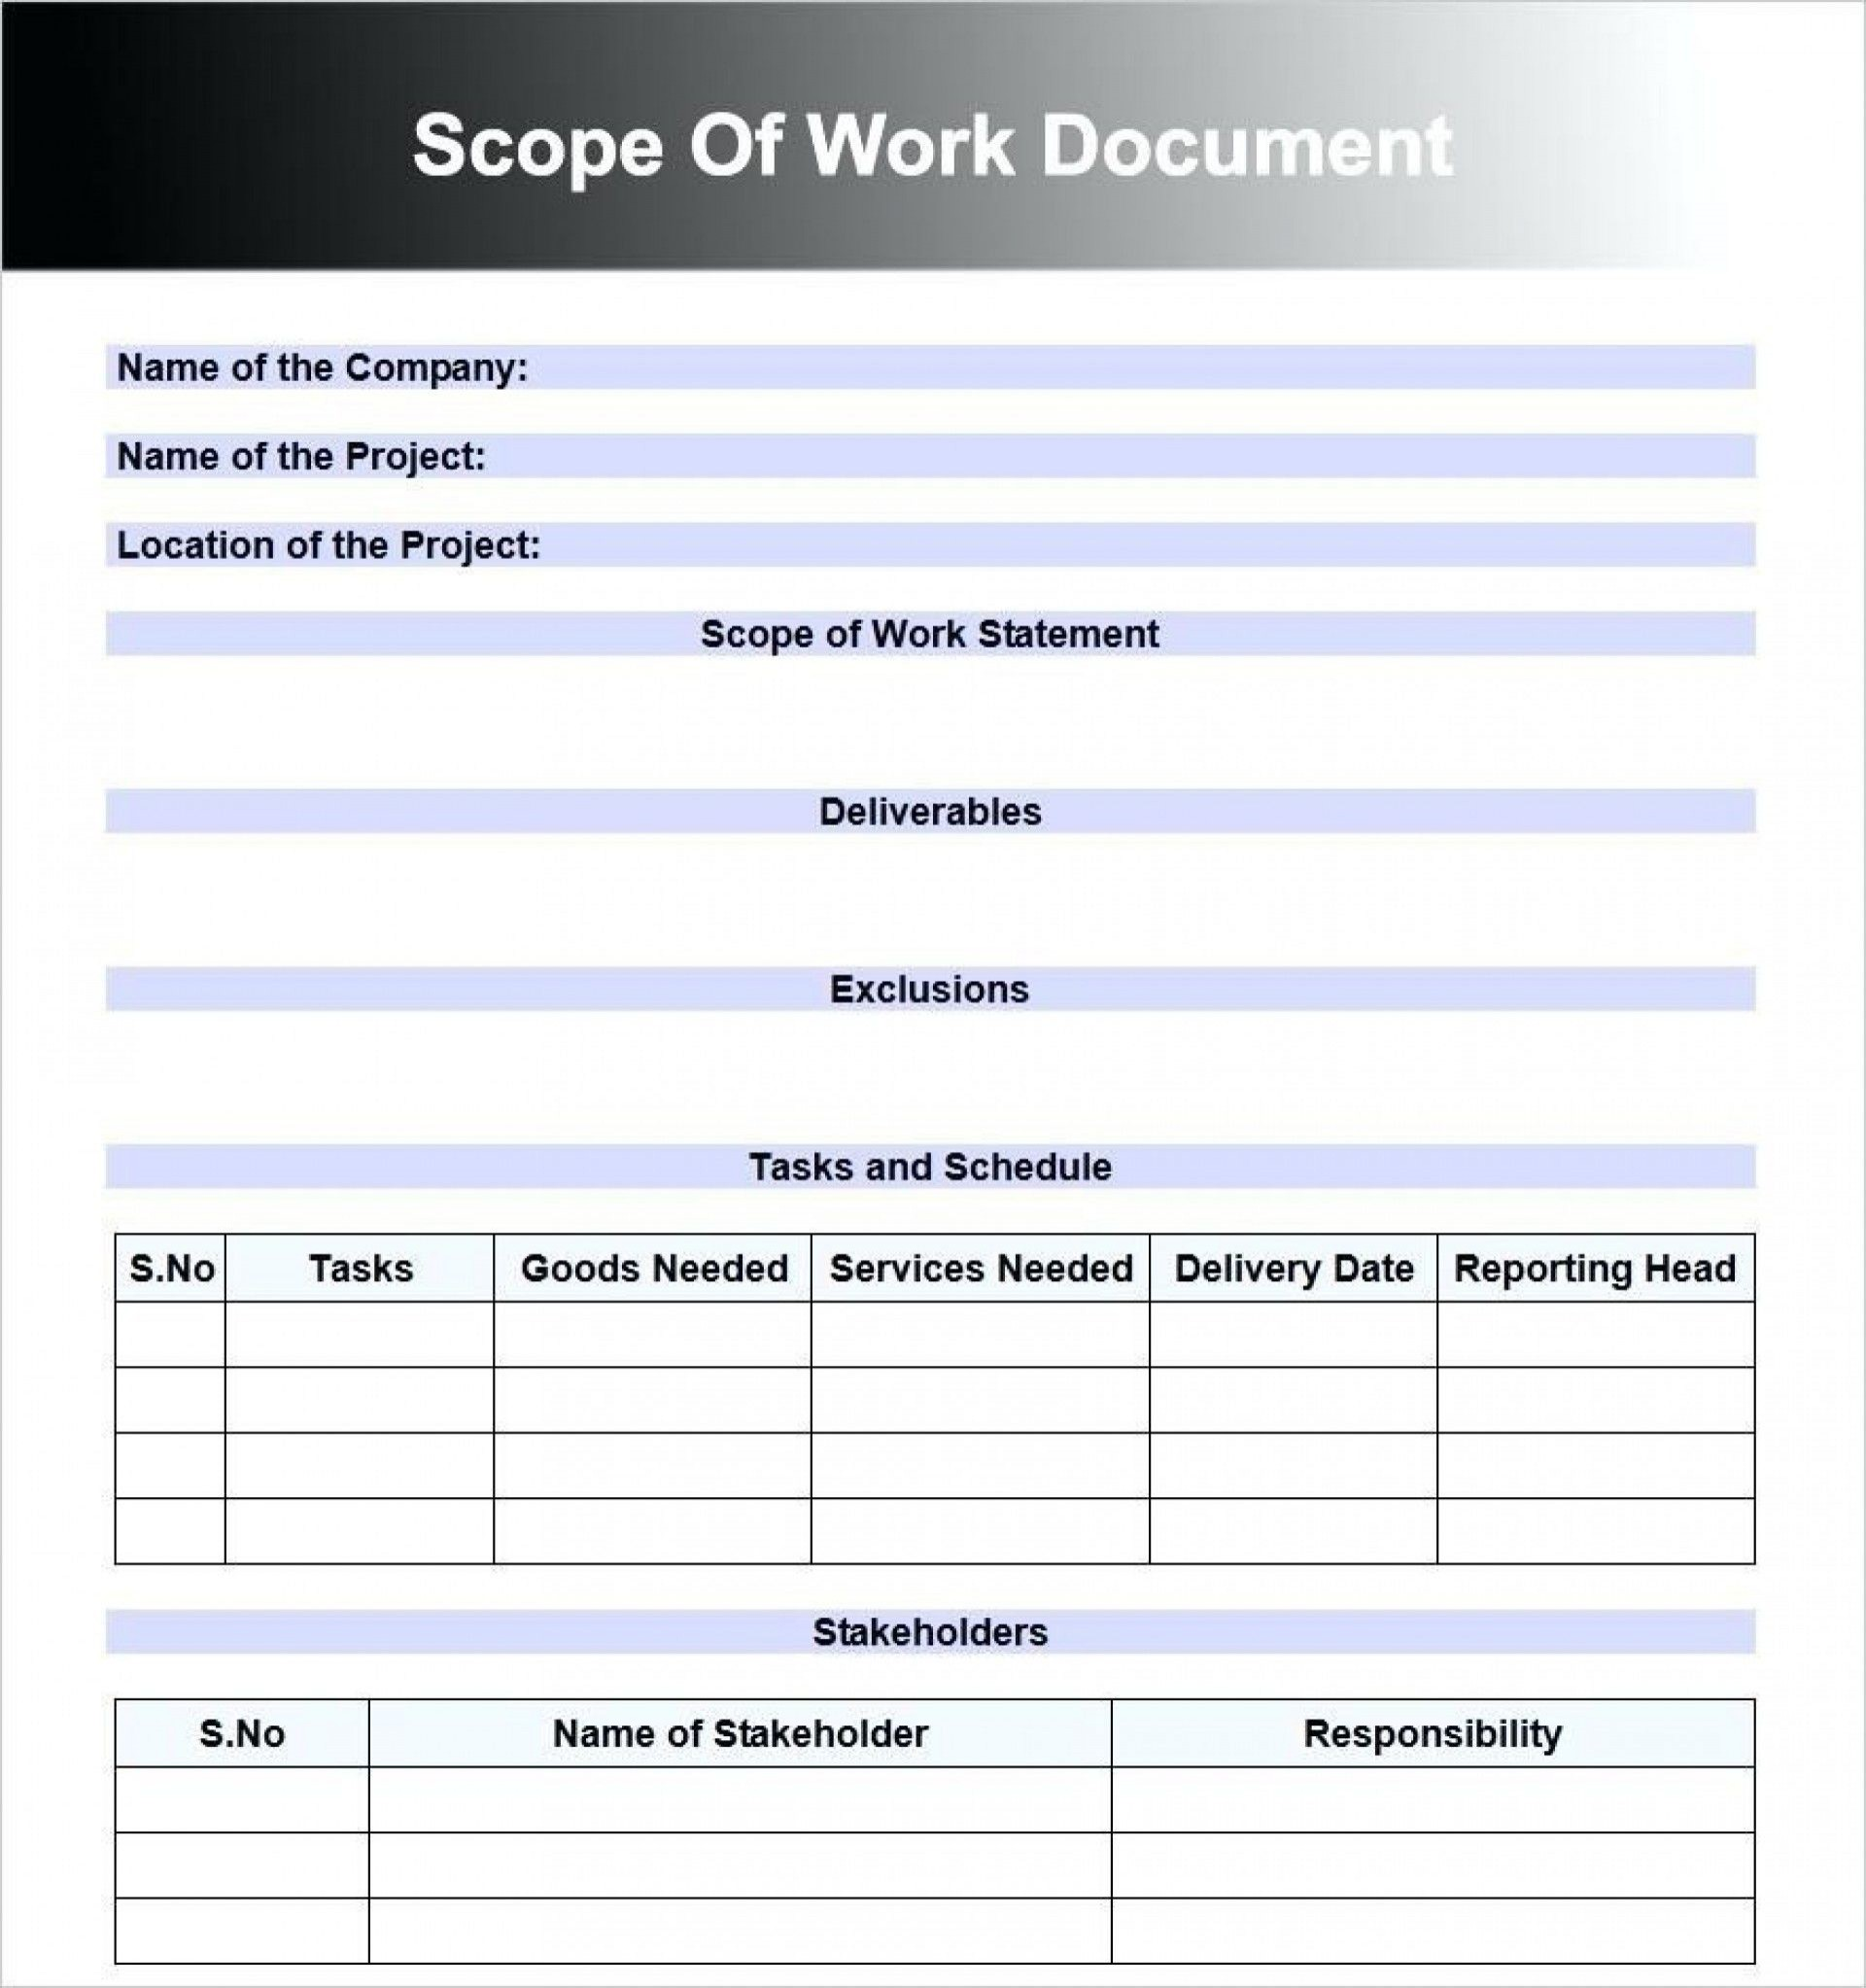 000 Best Construction Scope Of Work Template Word Highest Clarity 1920